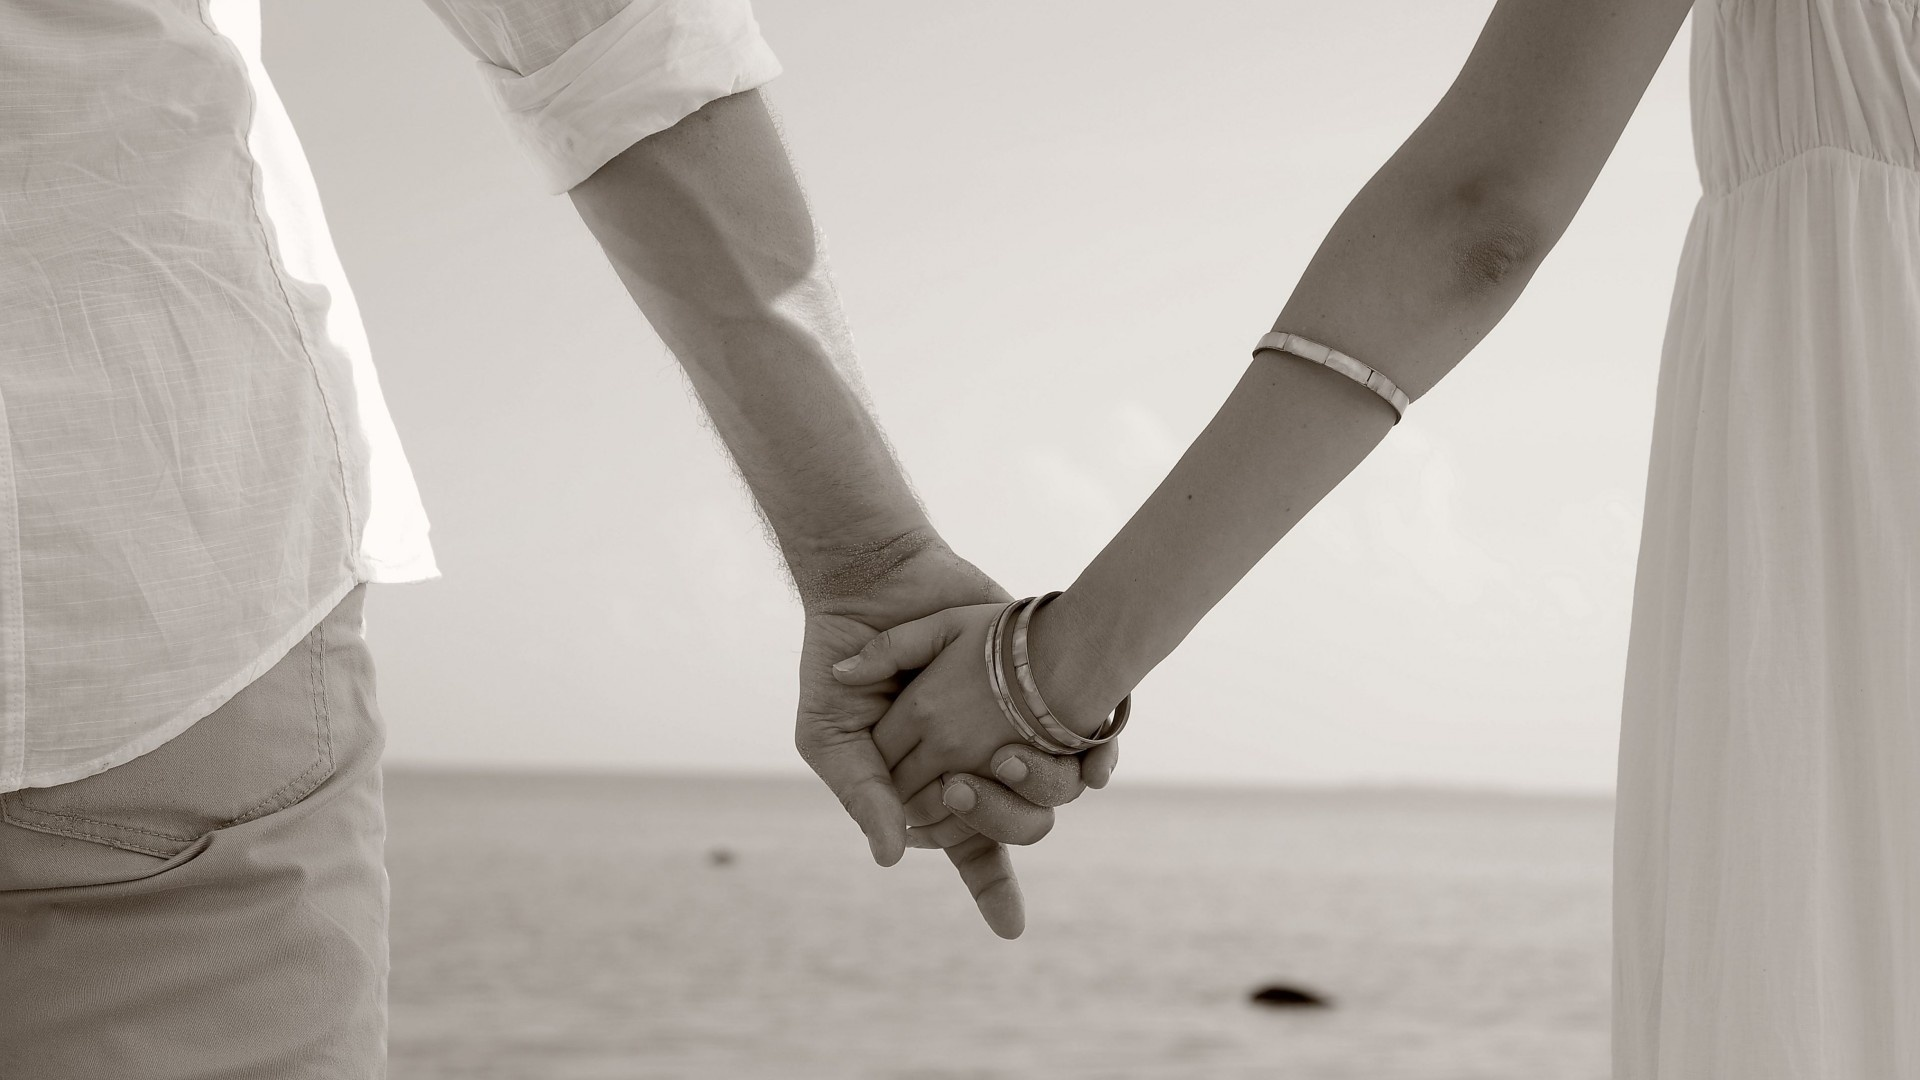 Boy-Girl-Cute-Couple-Holding-Hands-Wallpapers.jpg